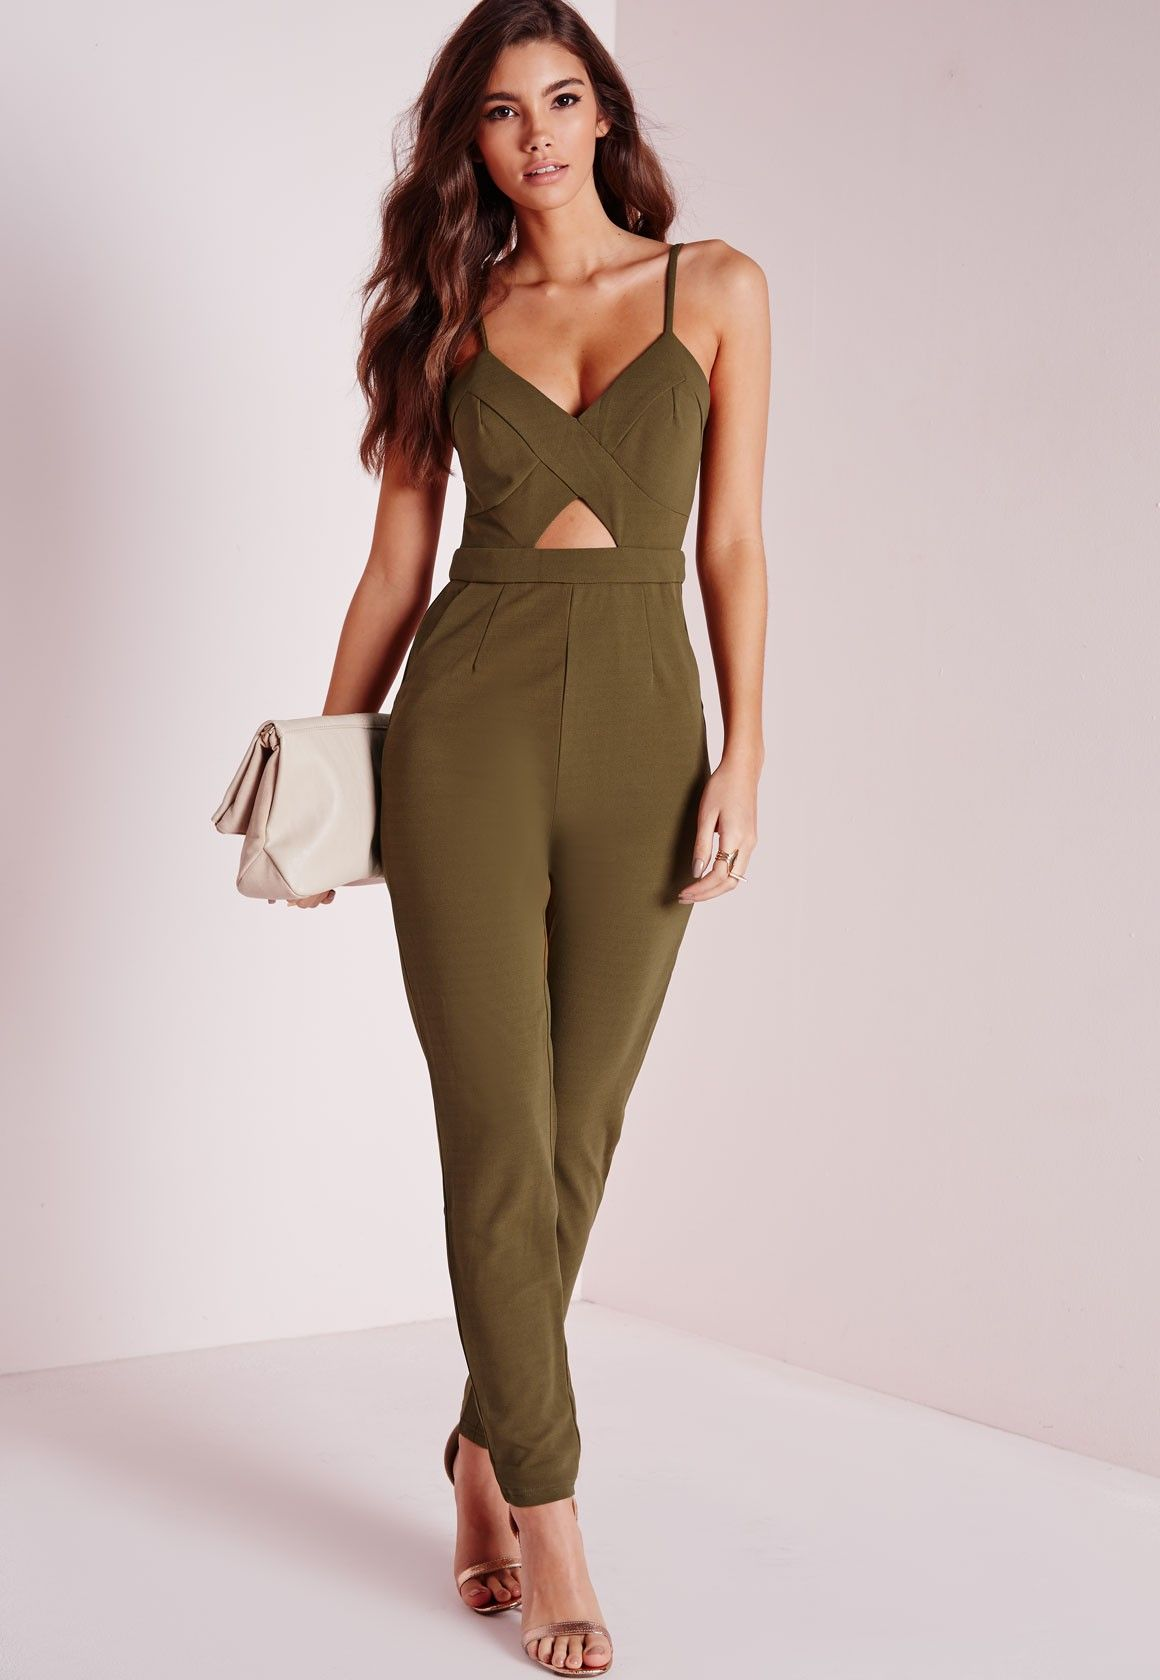 dfe3aaa8c19 Missguided - Strappy Cut Out Jumpsuit Khaki